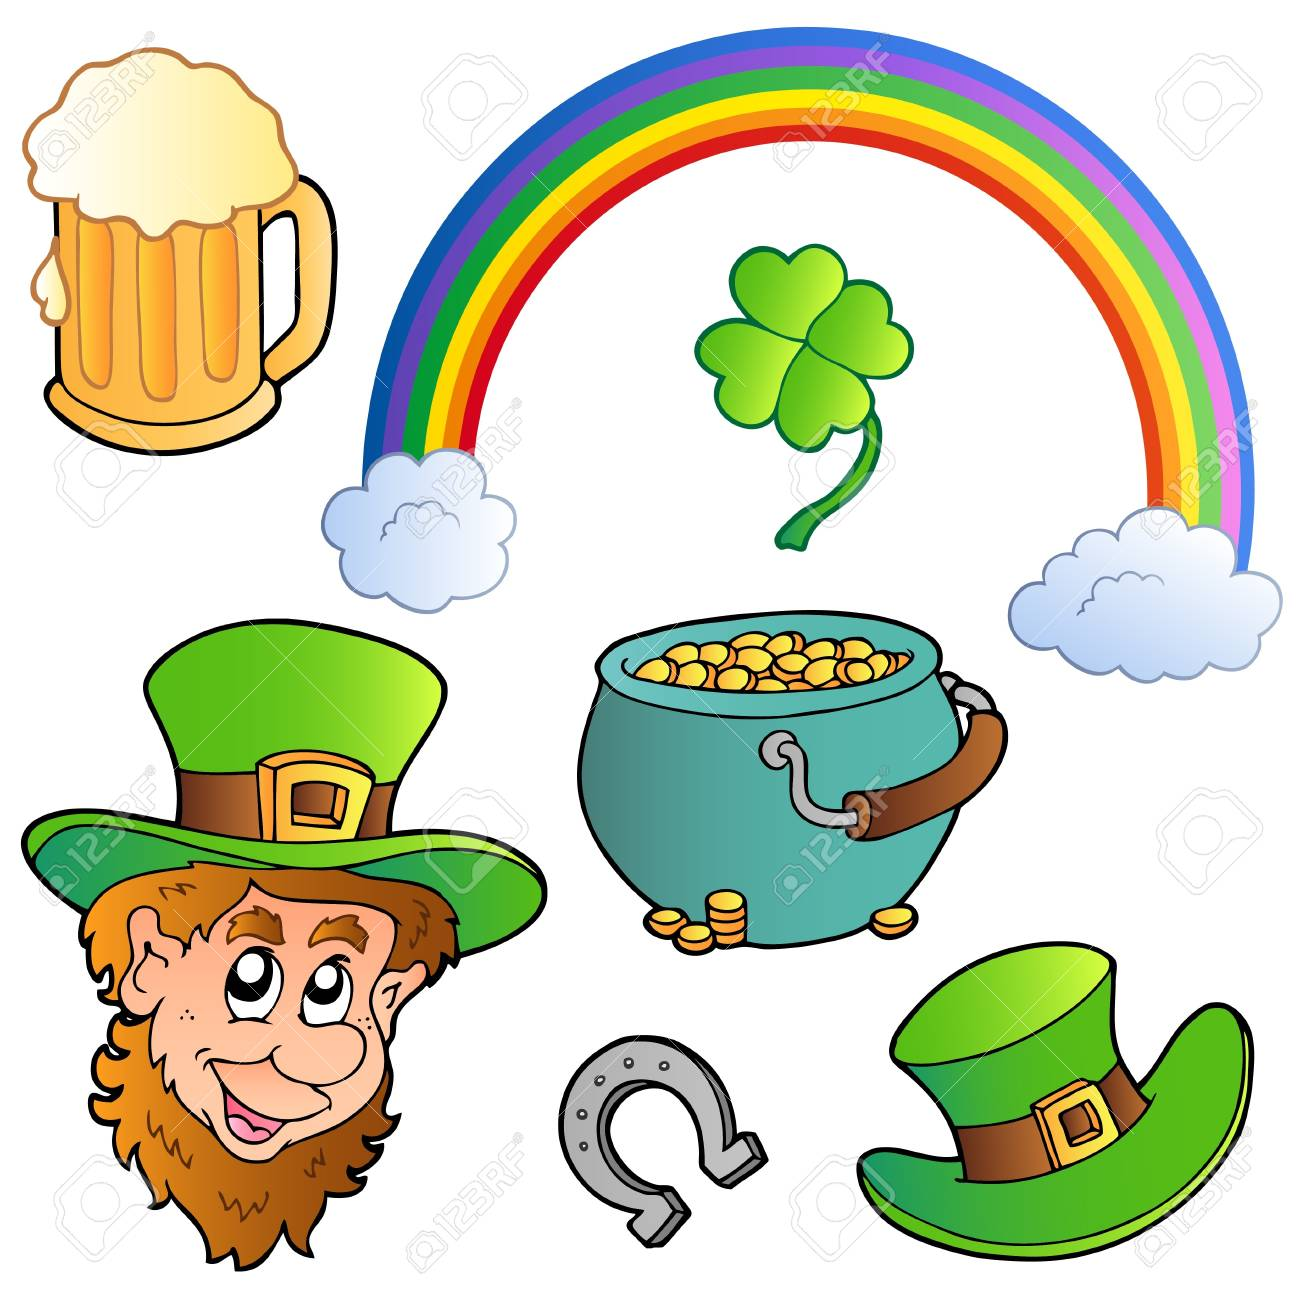 St Patricks day collection 3 Stock Vector - 8799933